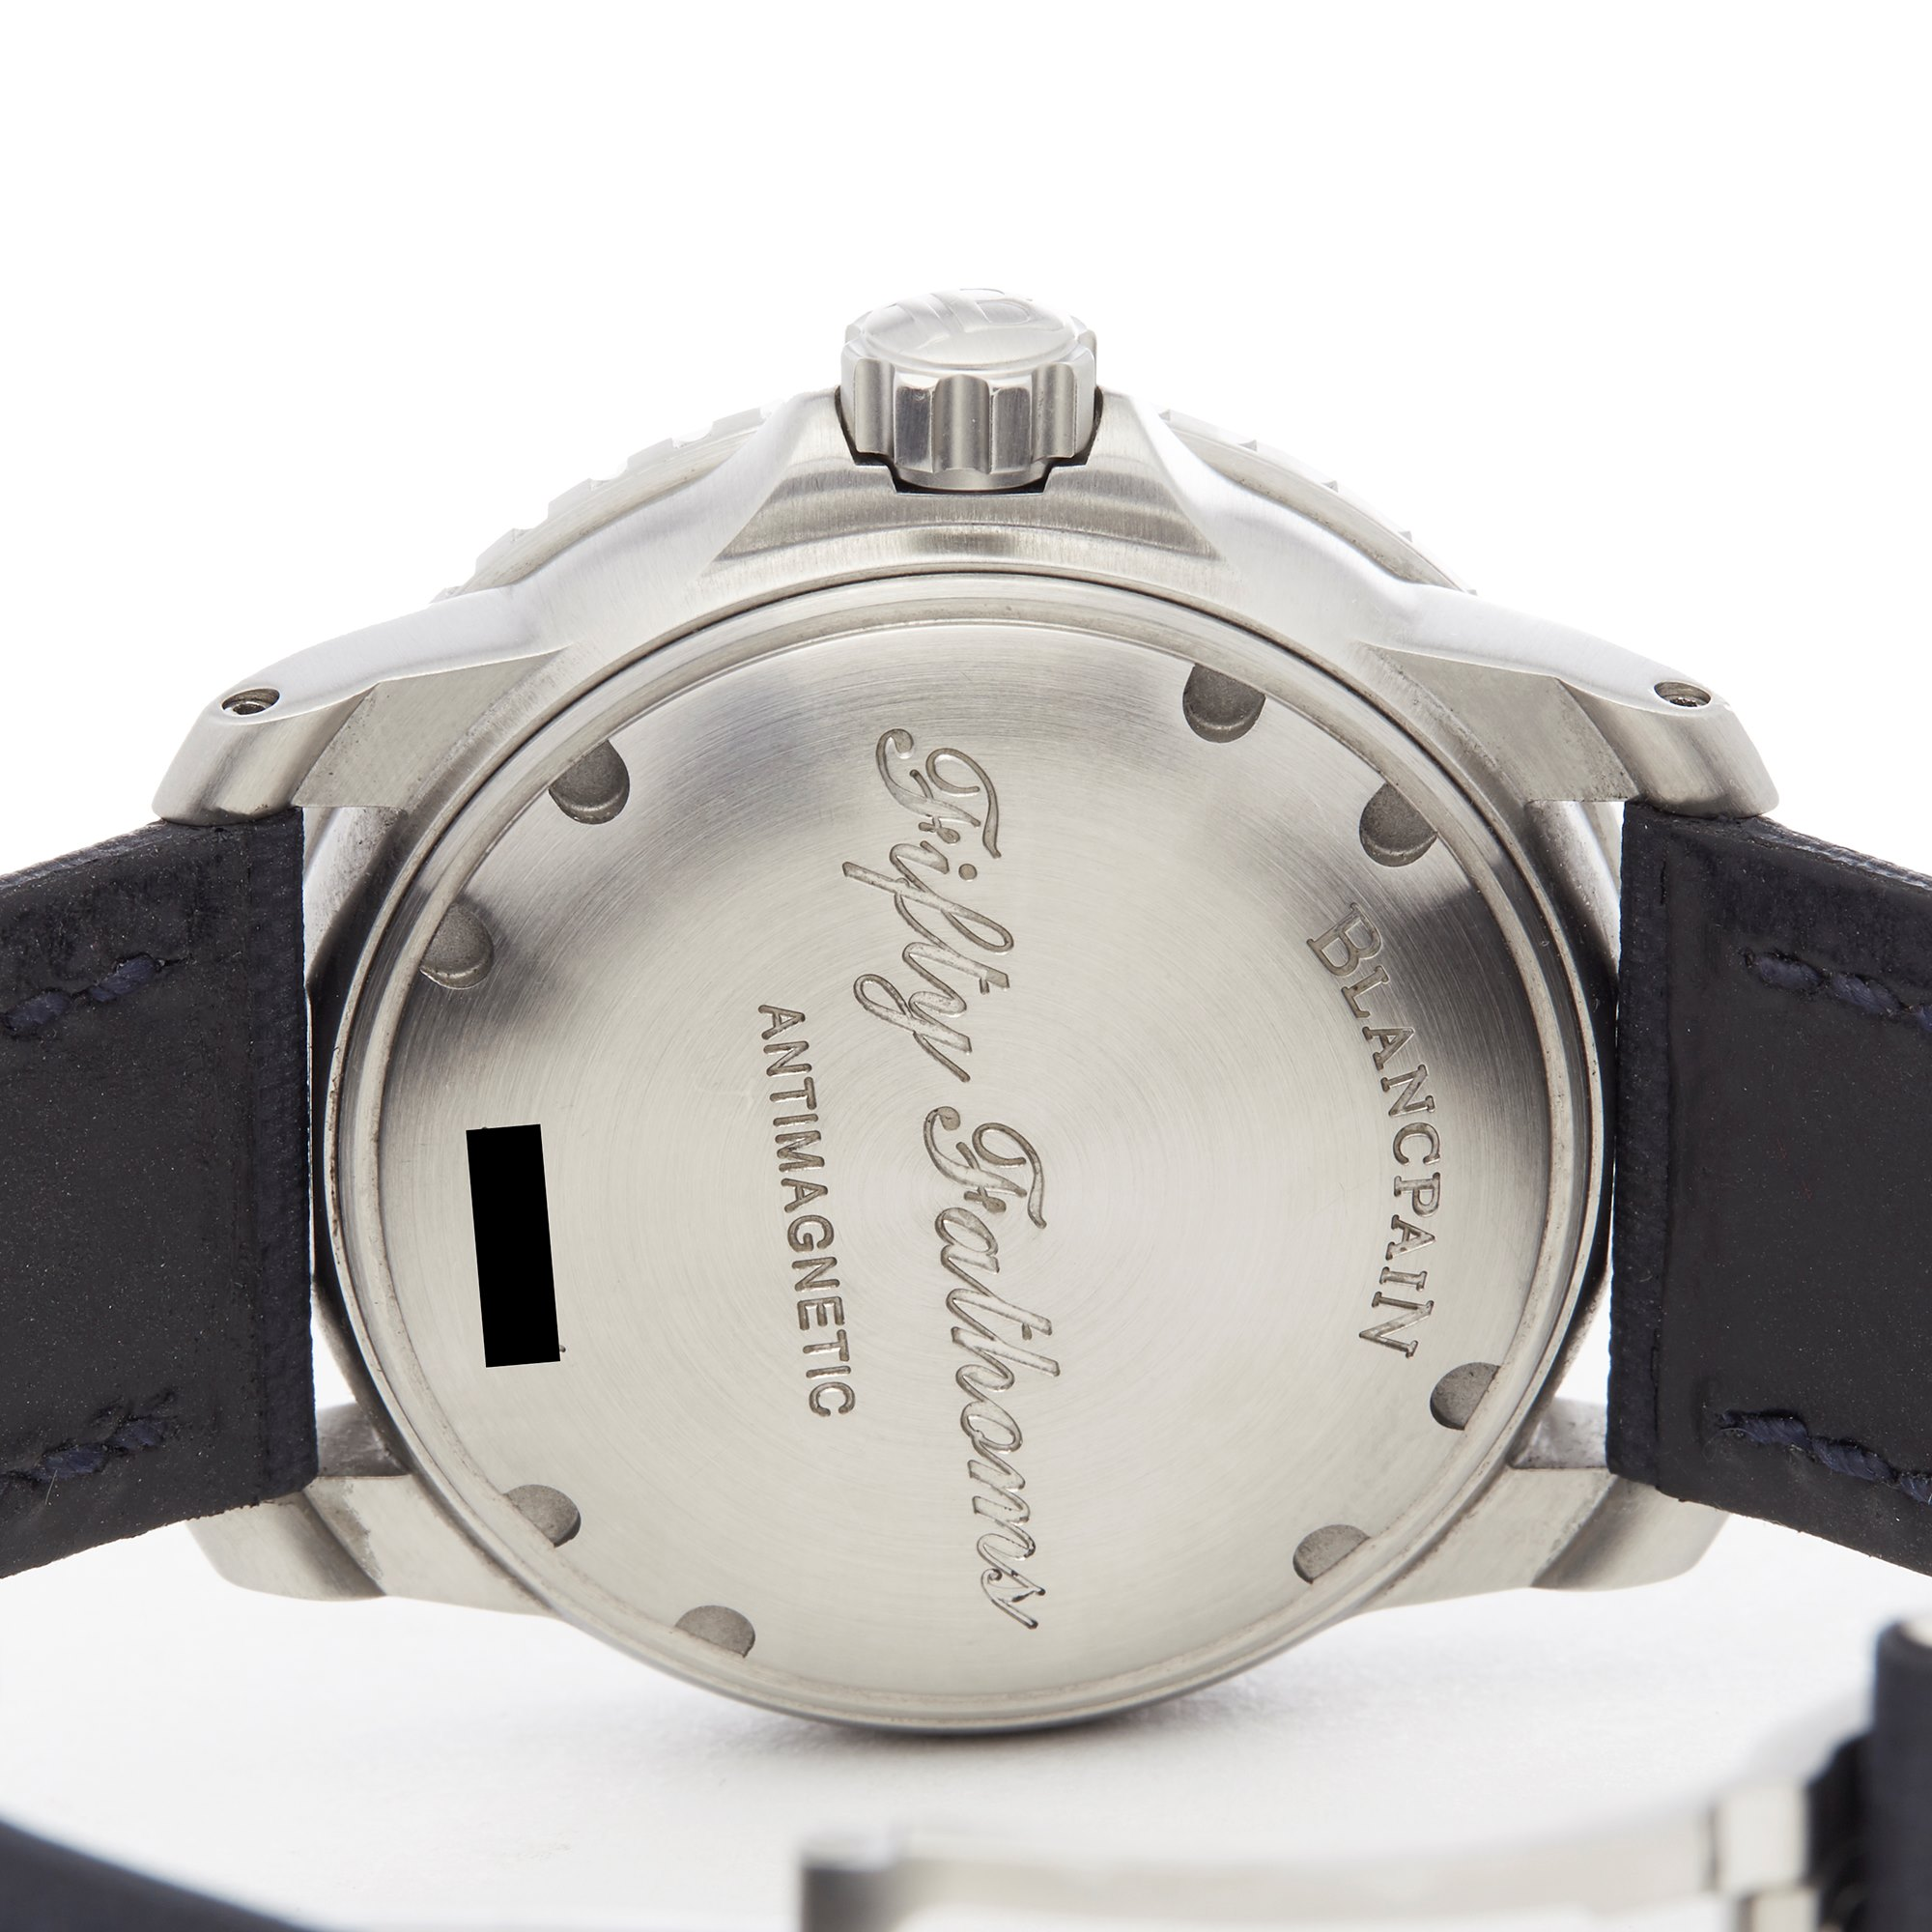 Blancpain Fifty Fathoms Stainless Steel 5015D-1140-52B